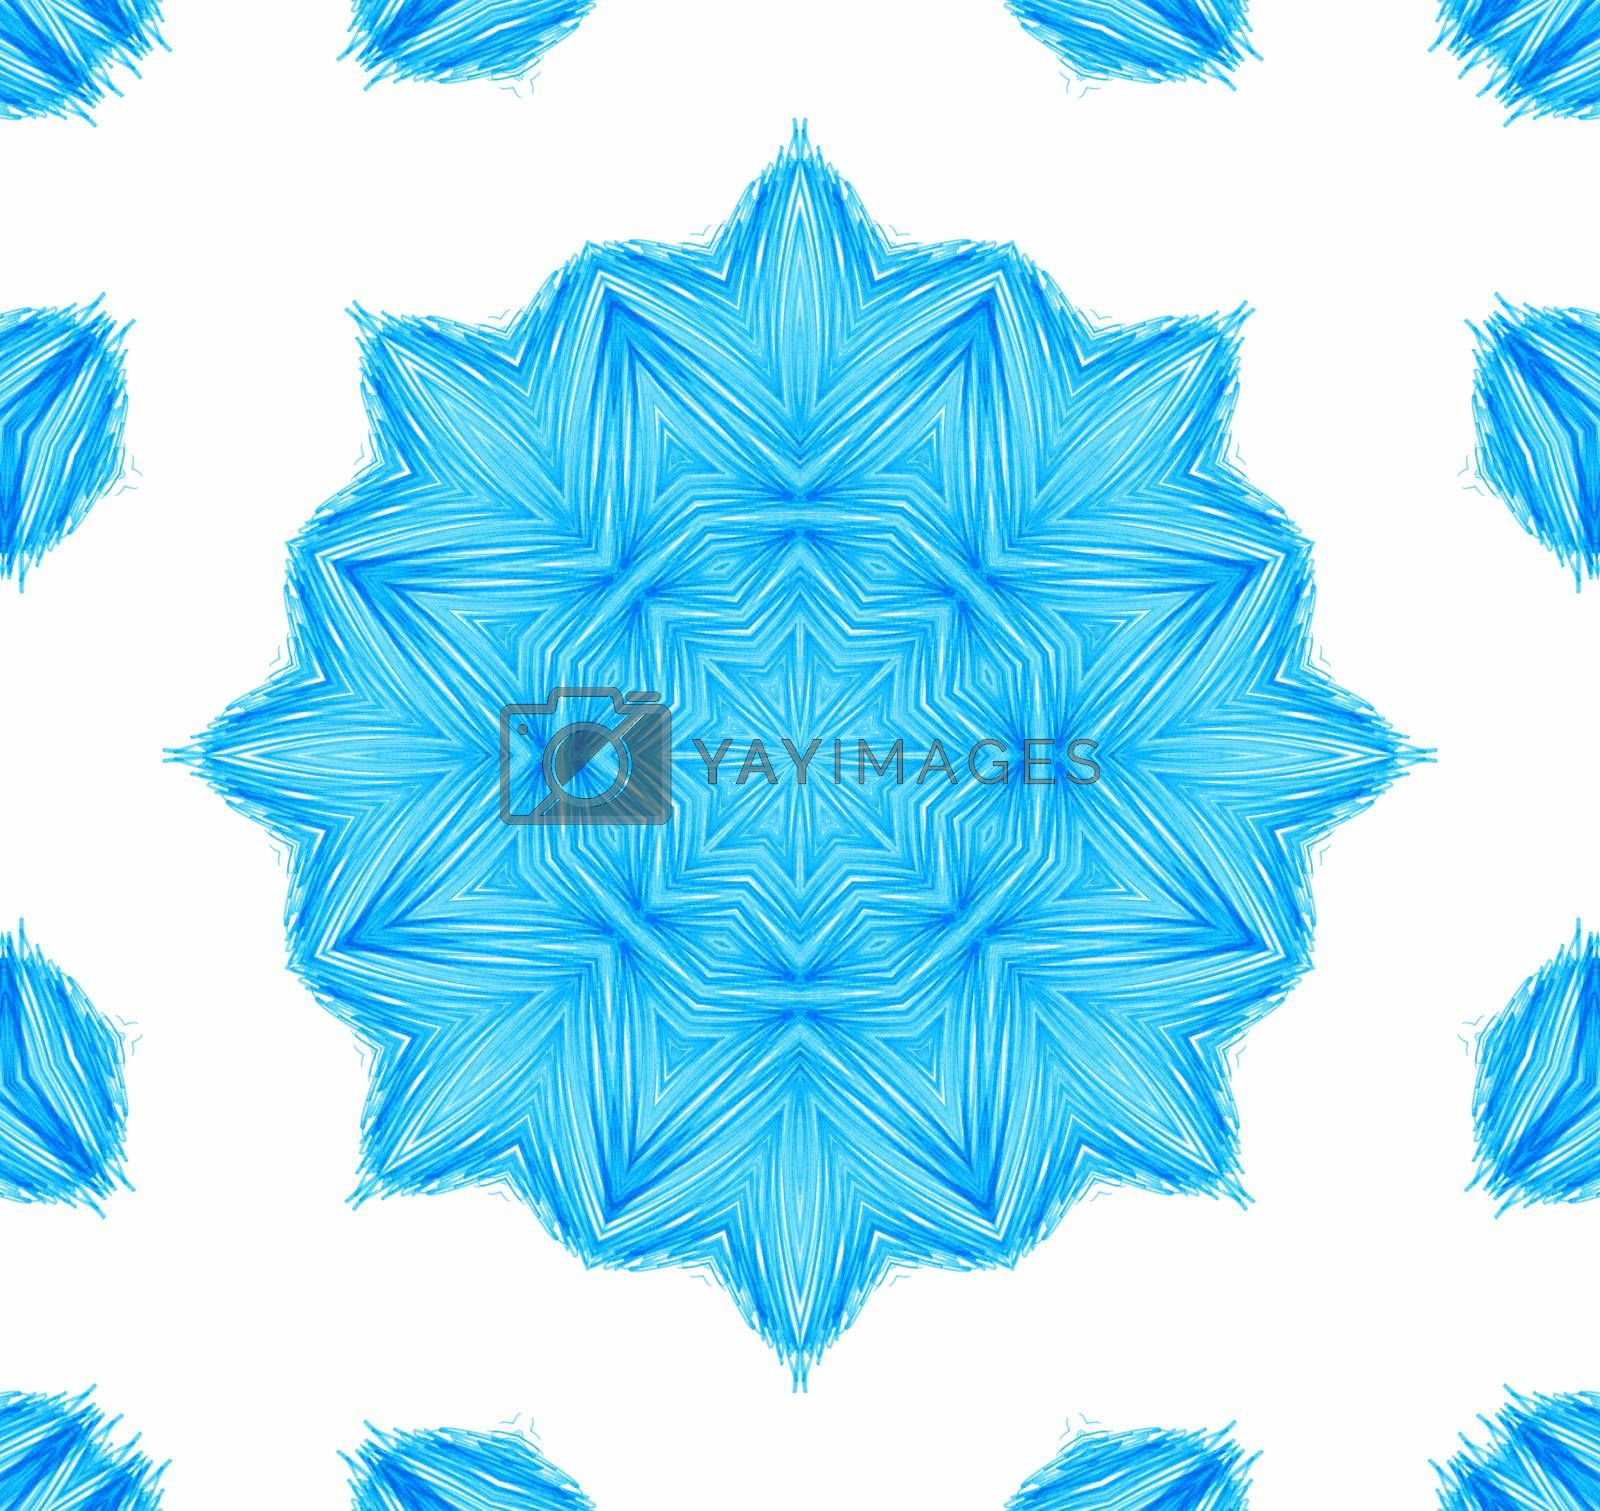 Abstract blue concentric pattern on white background for design